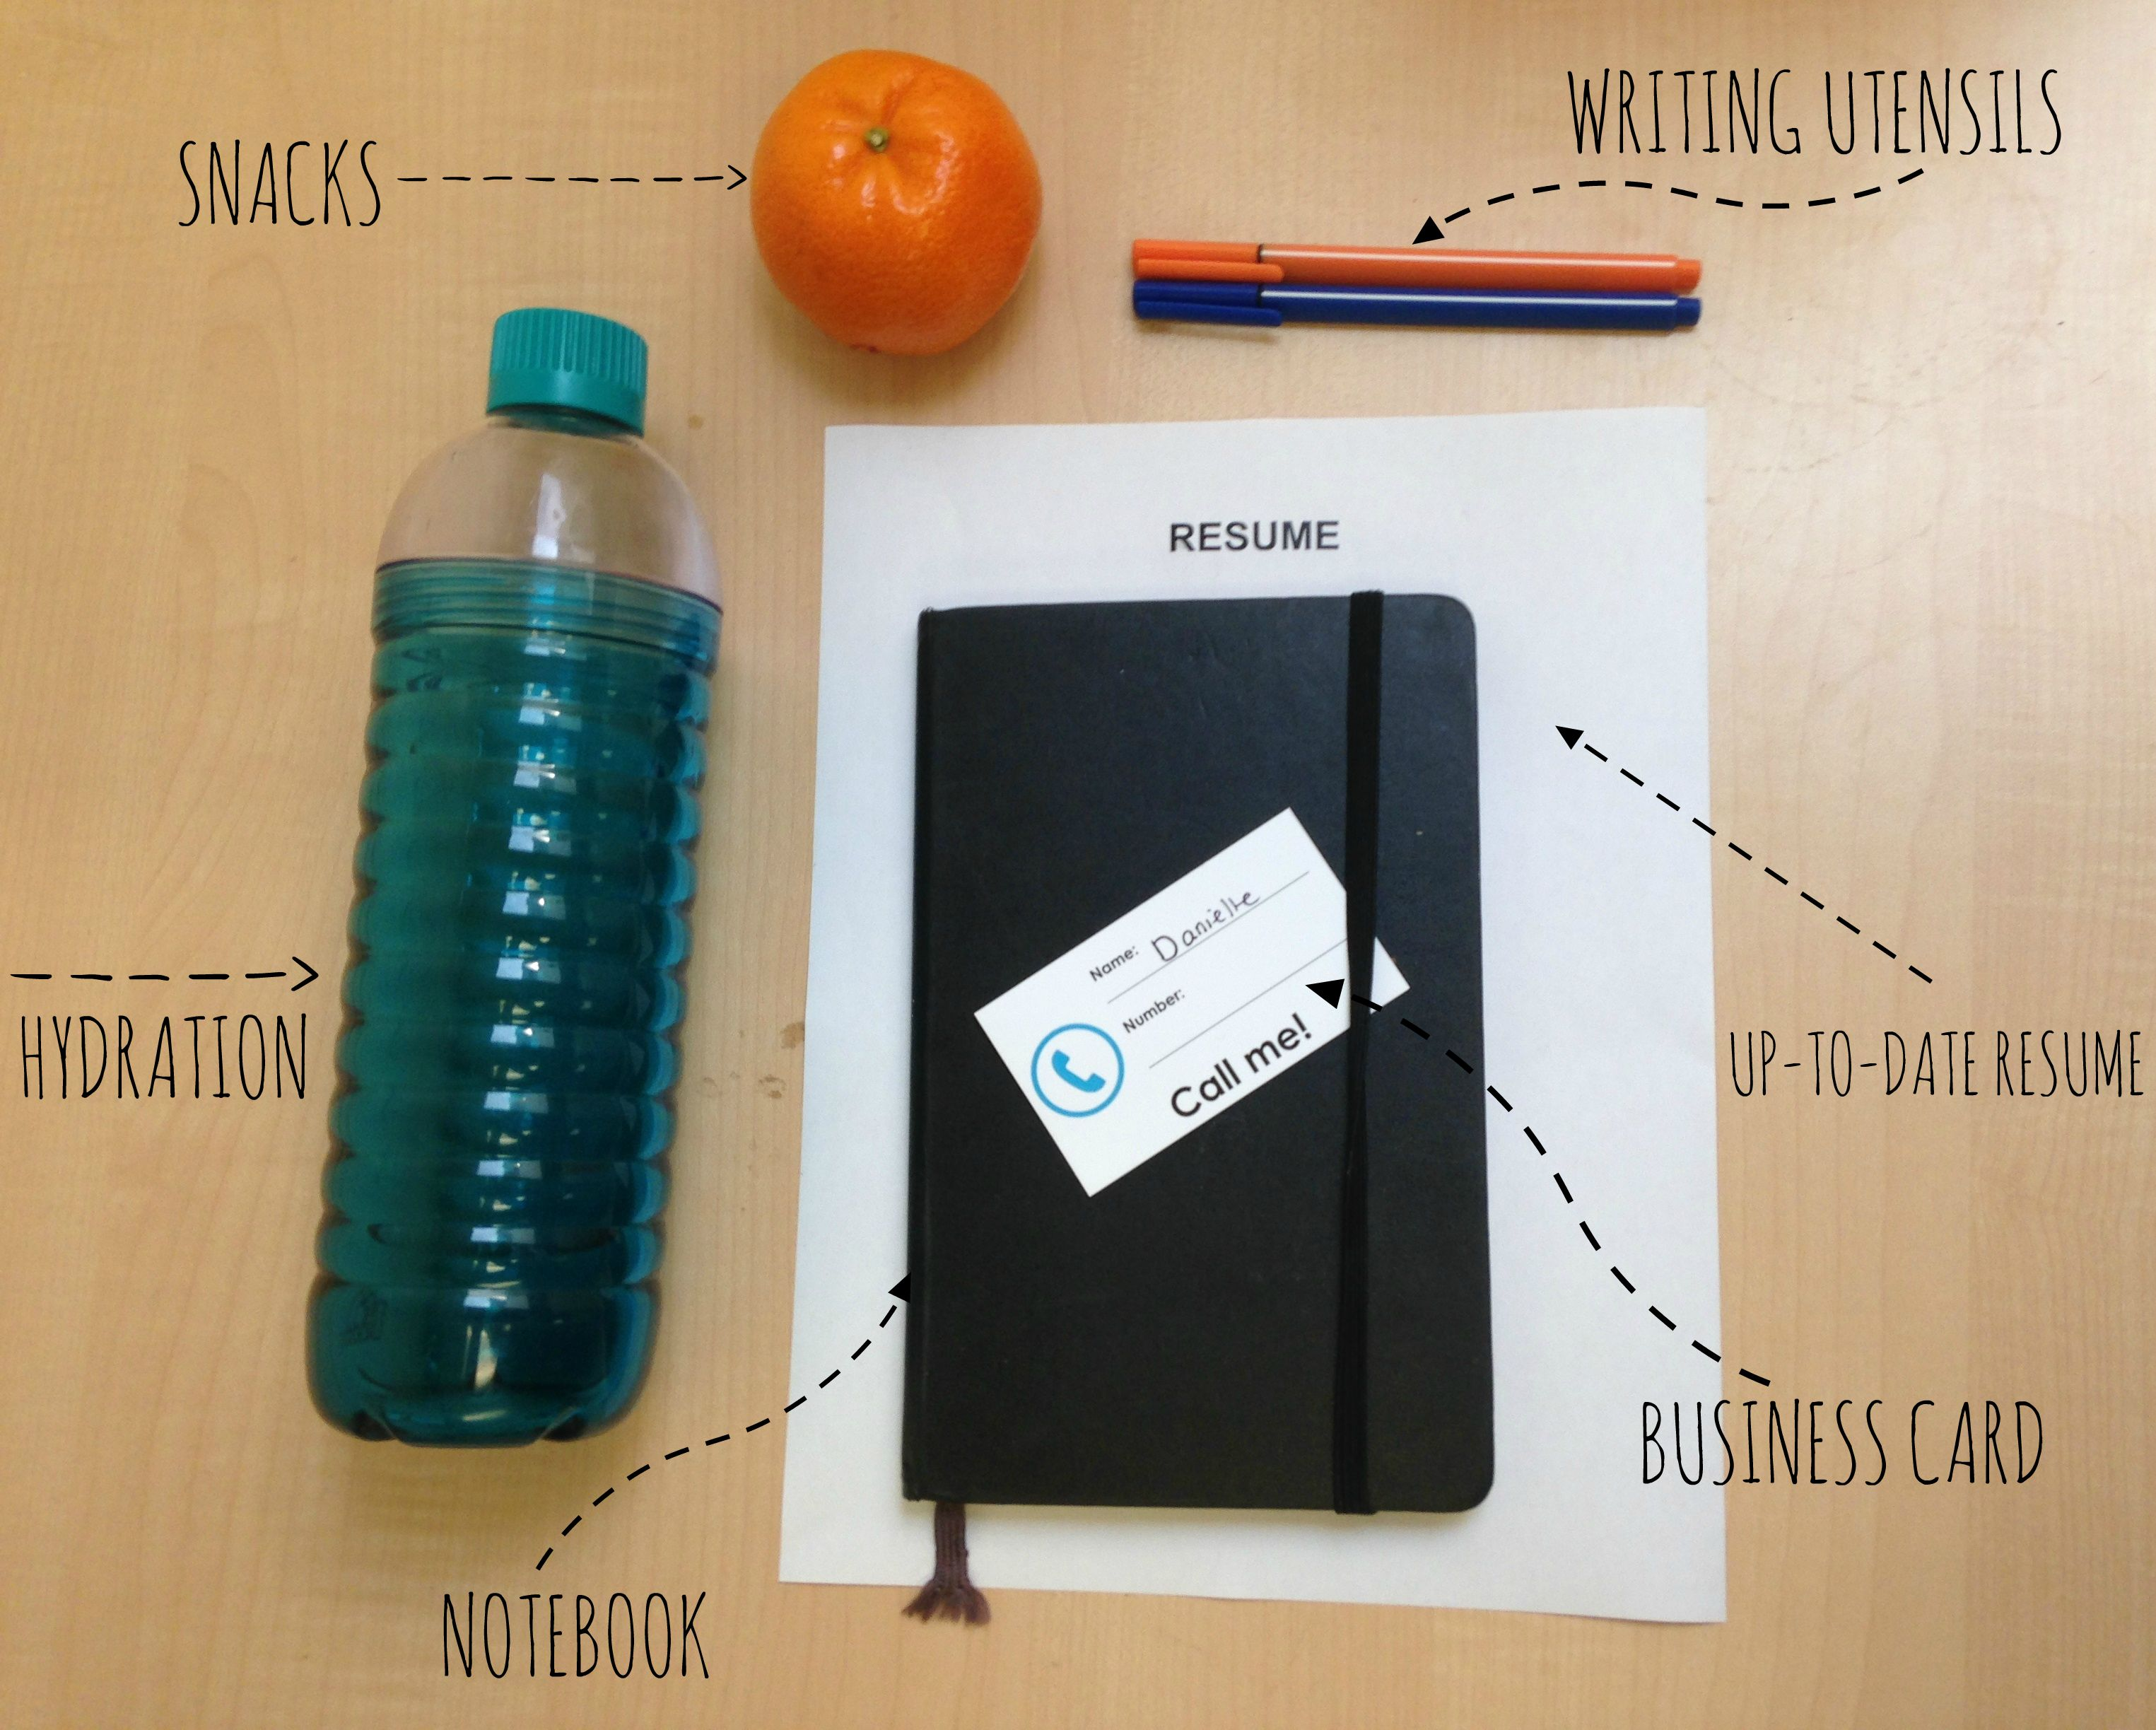 Items you may want to bring to CID with labels: snacks, writing utensils, up-to-date resume, business card, notebook, hydration (a water bottle)